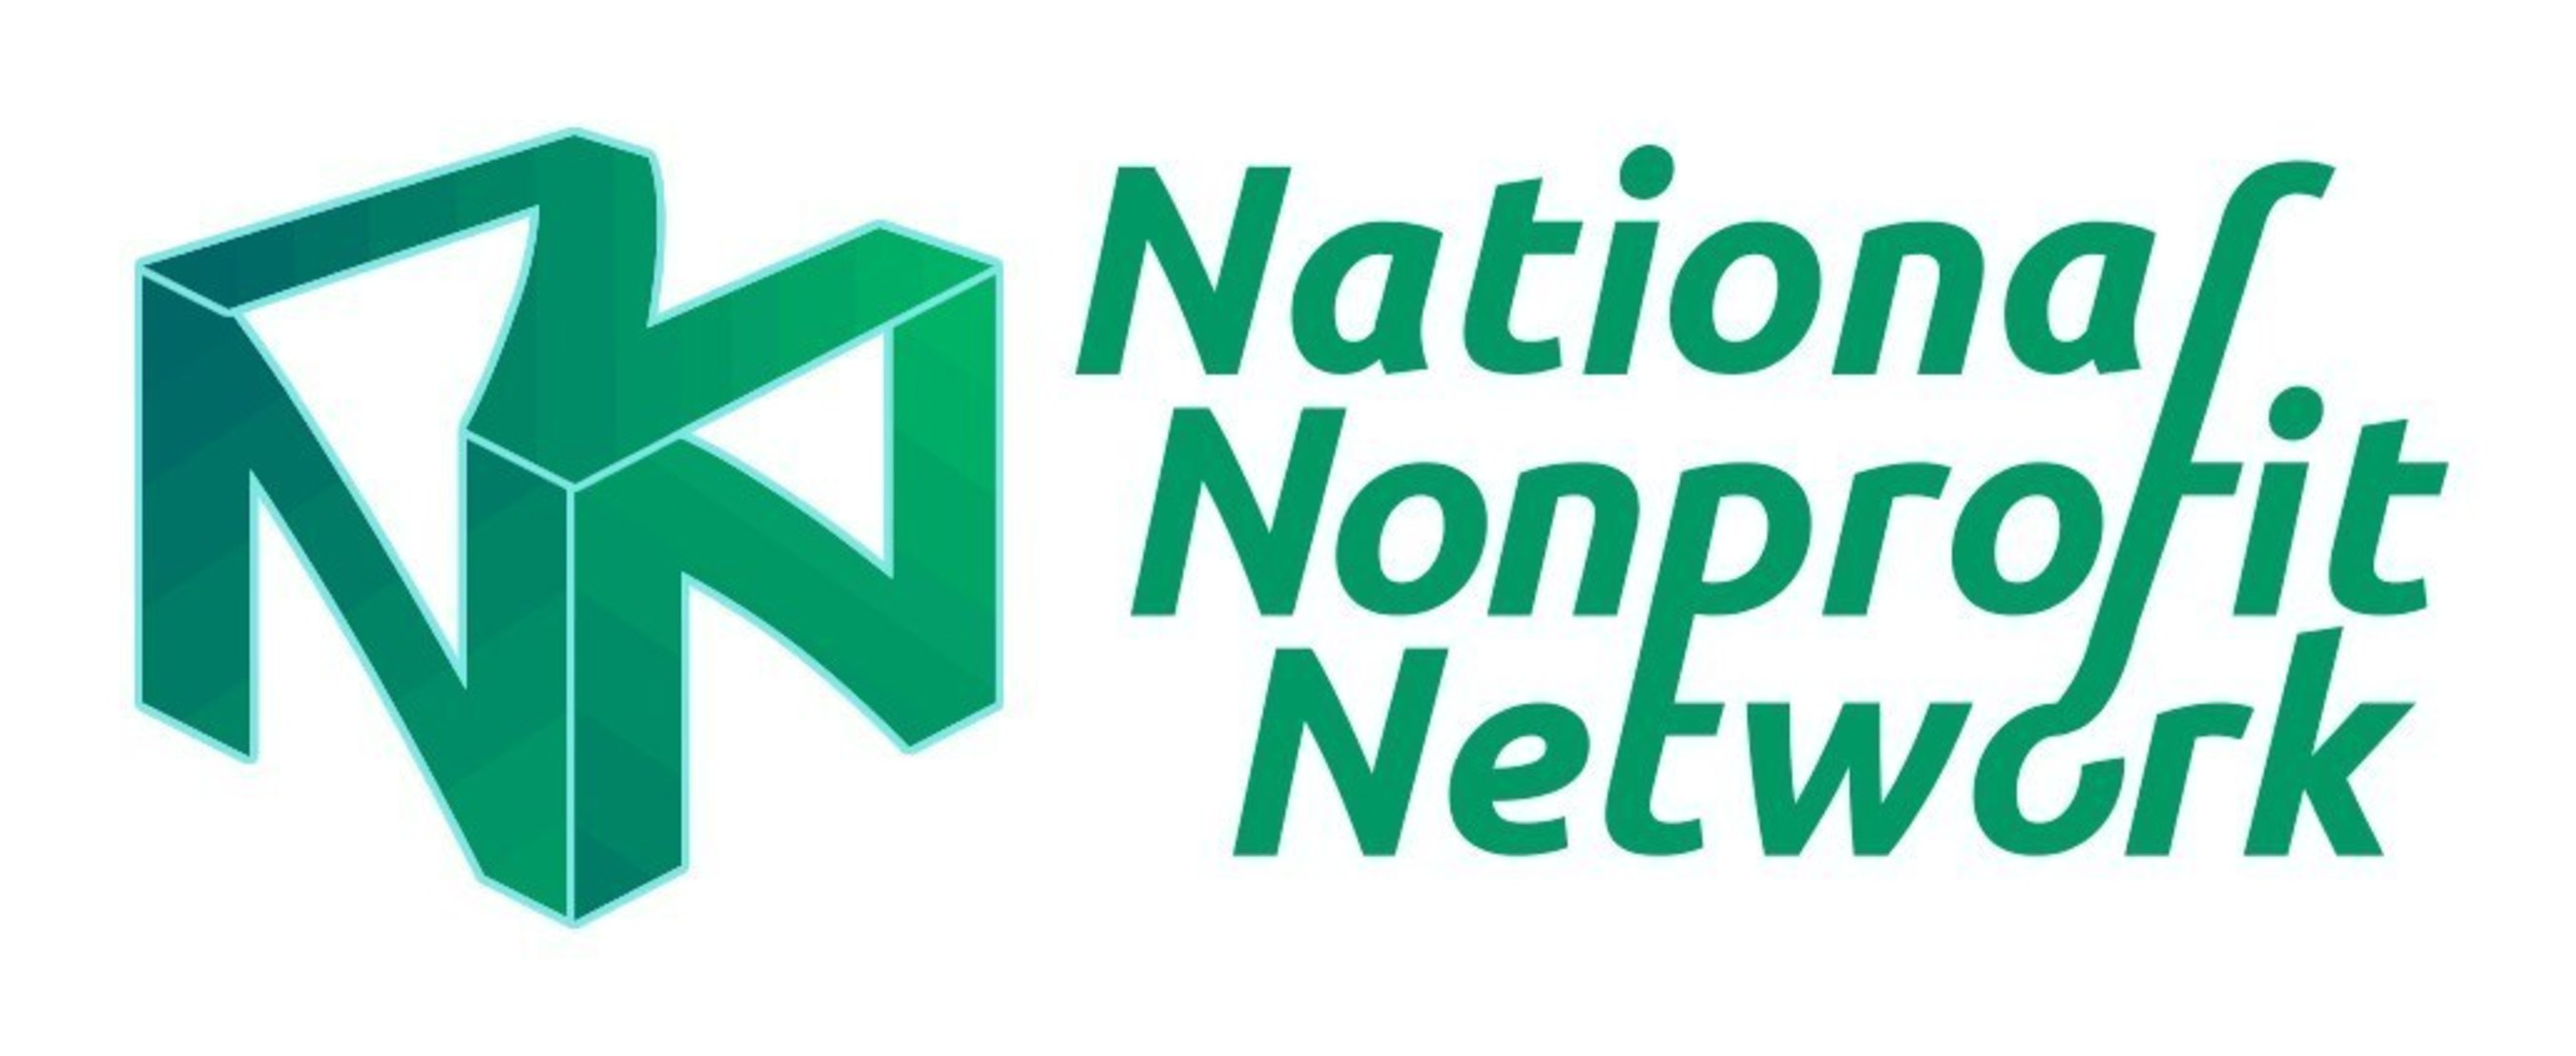 National Nonprofit Network Offers Innovative Funding Solutions for Nonprofits Strapped for Cash!